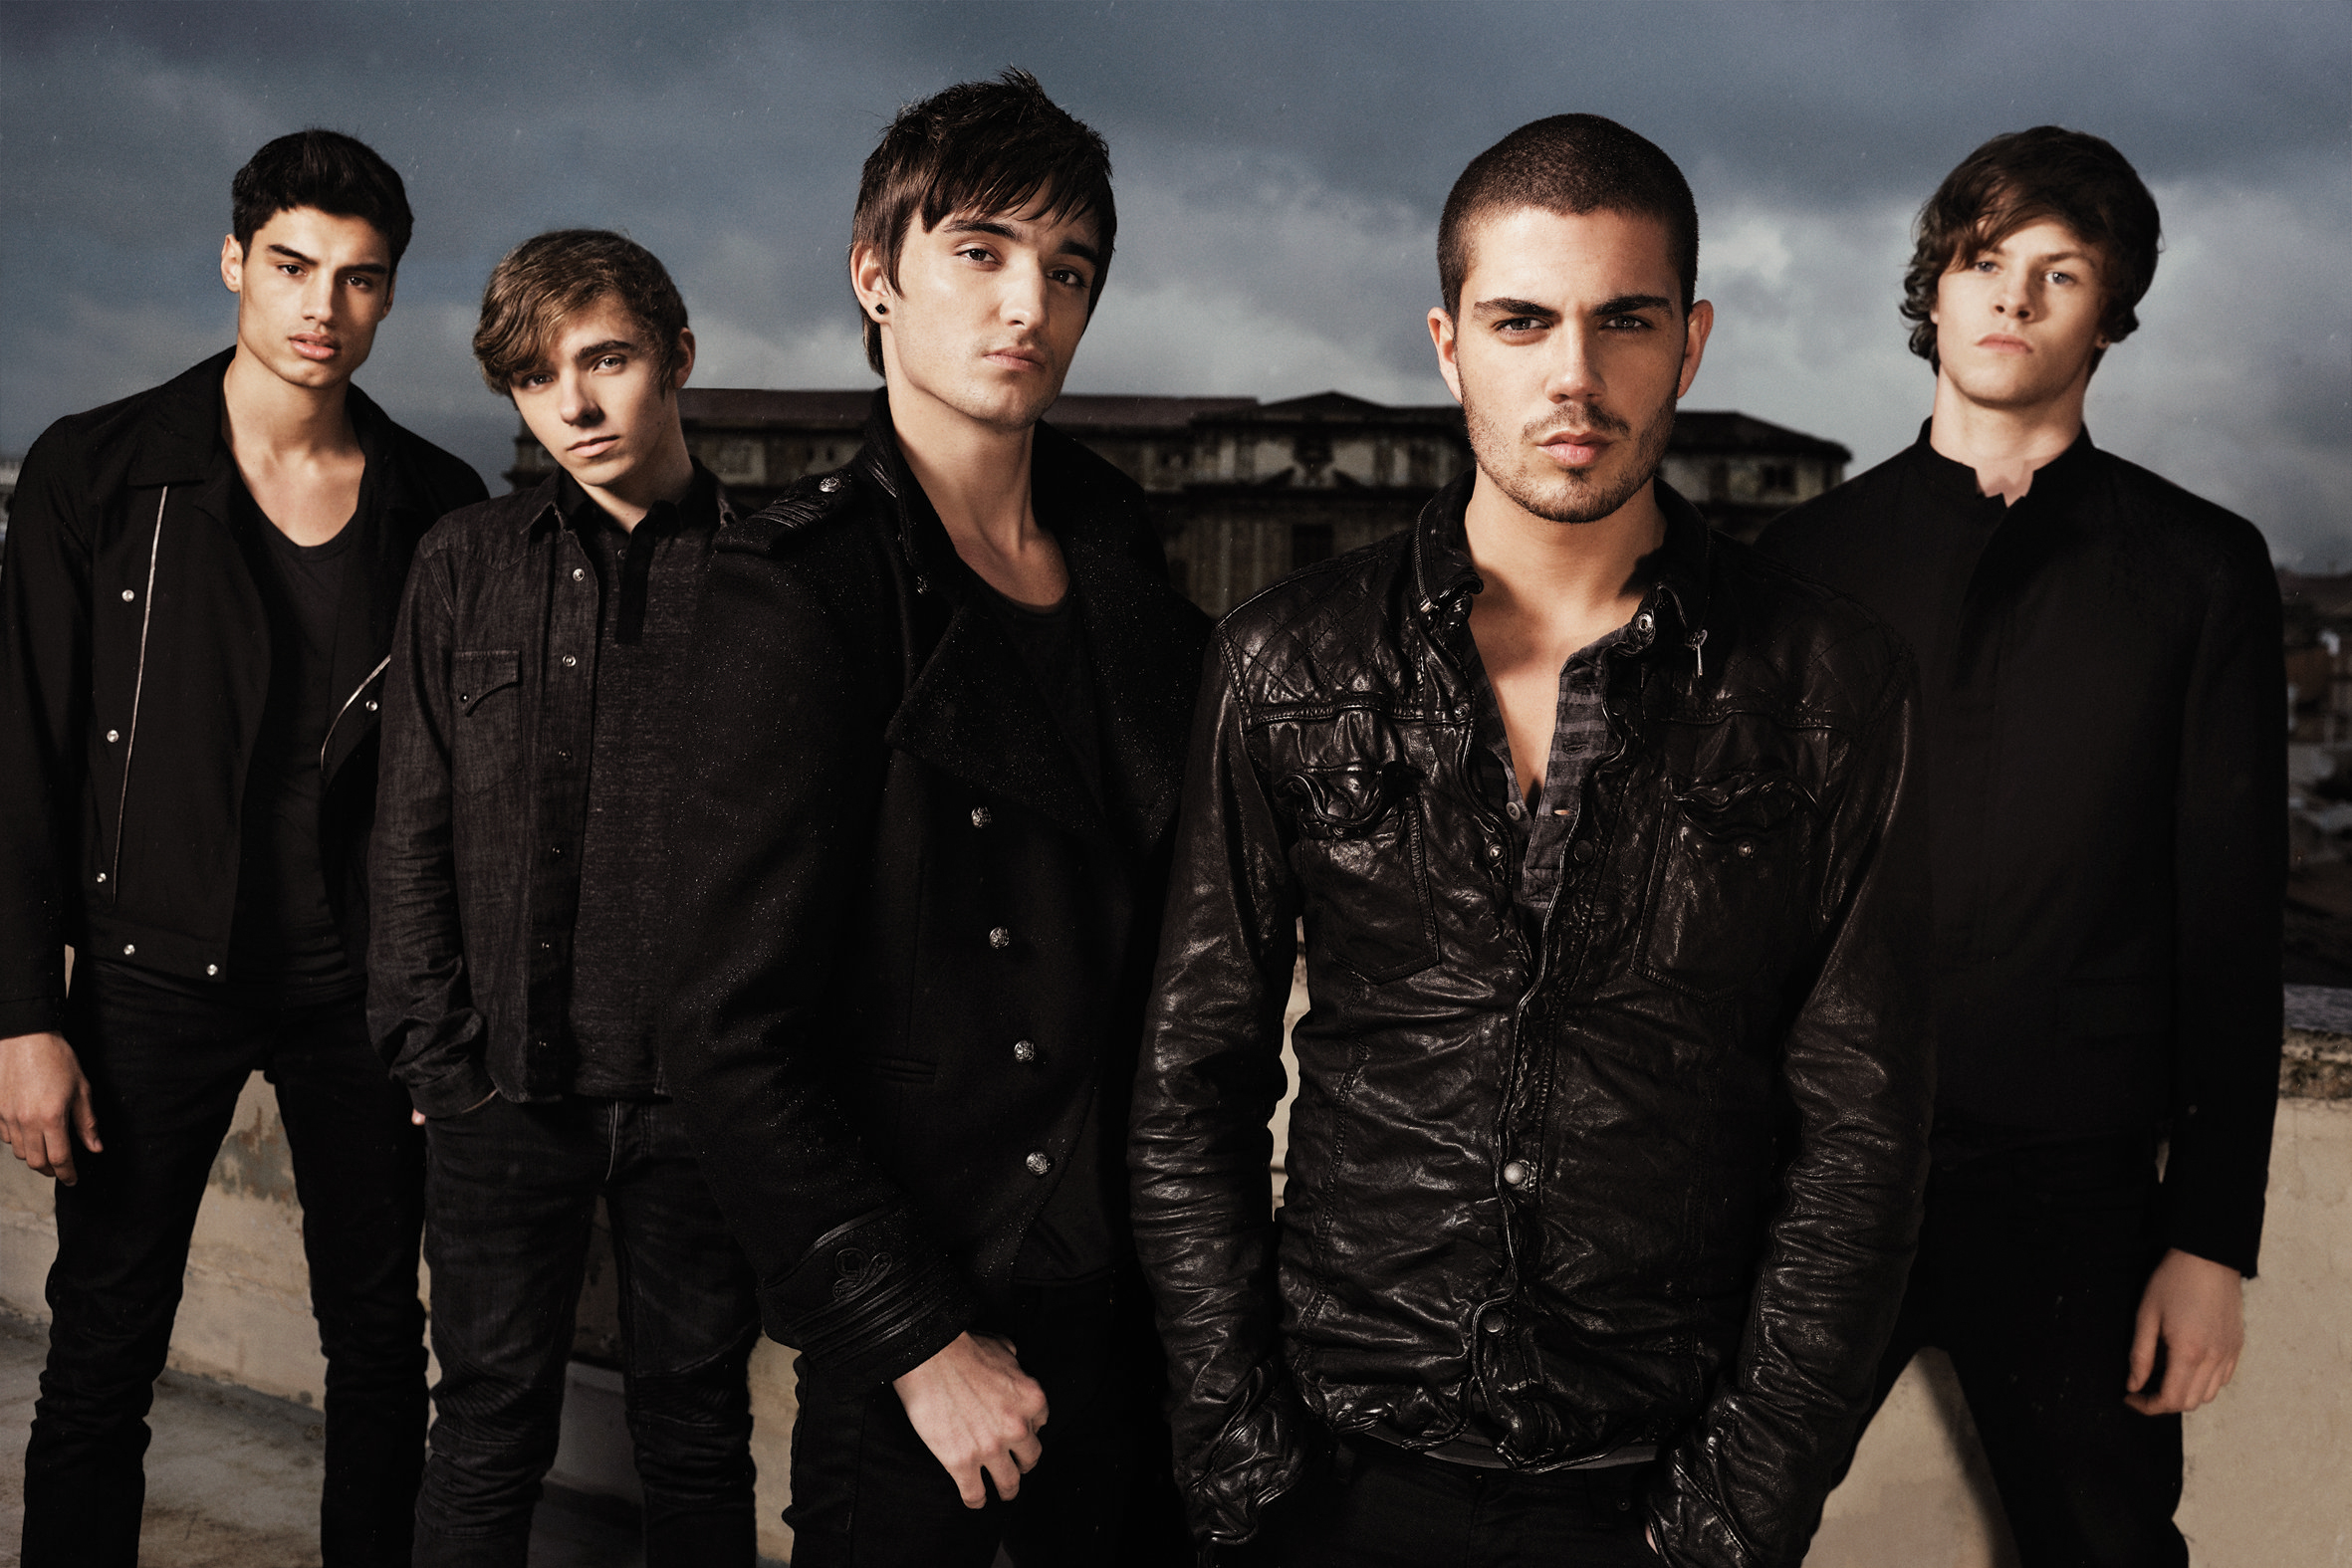 The wanted the wanted - photo#4